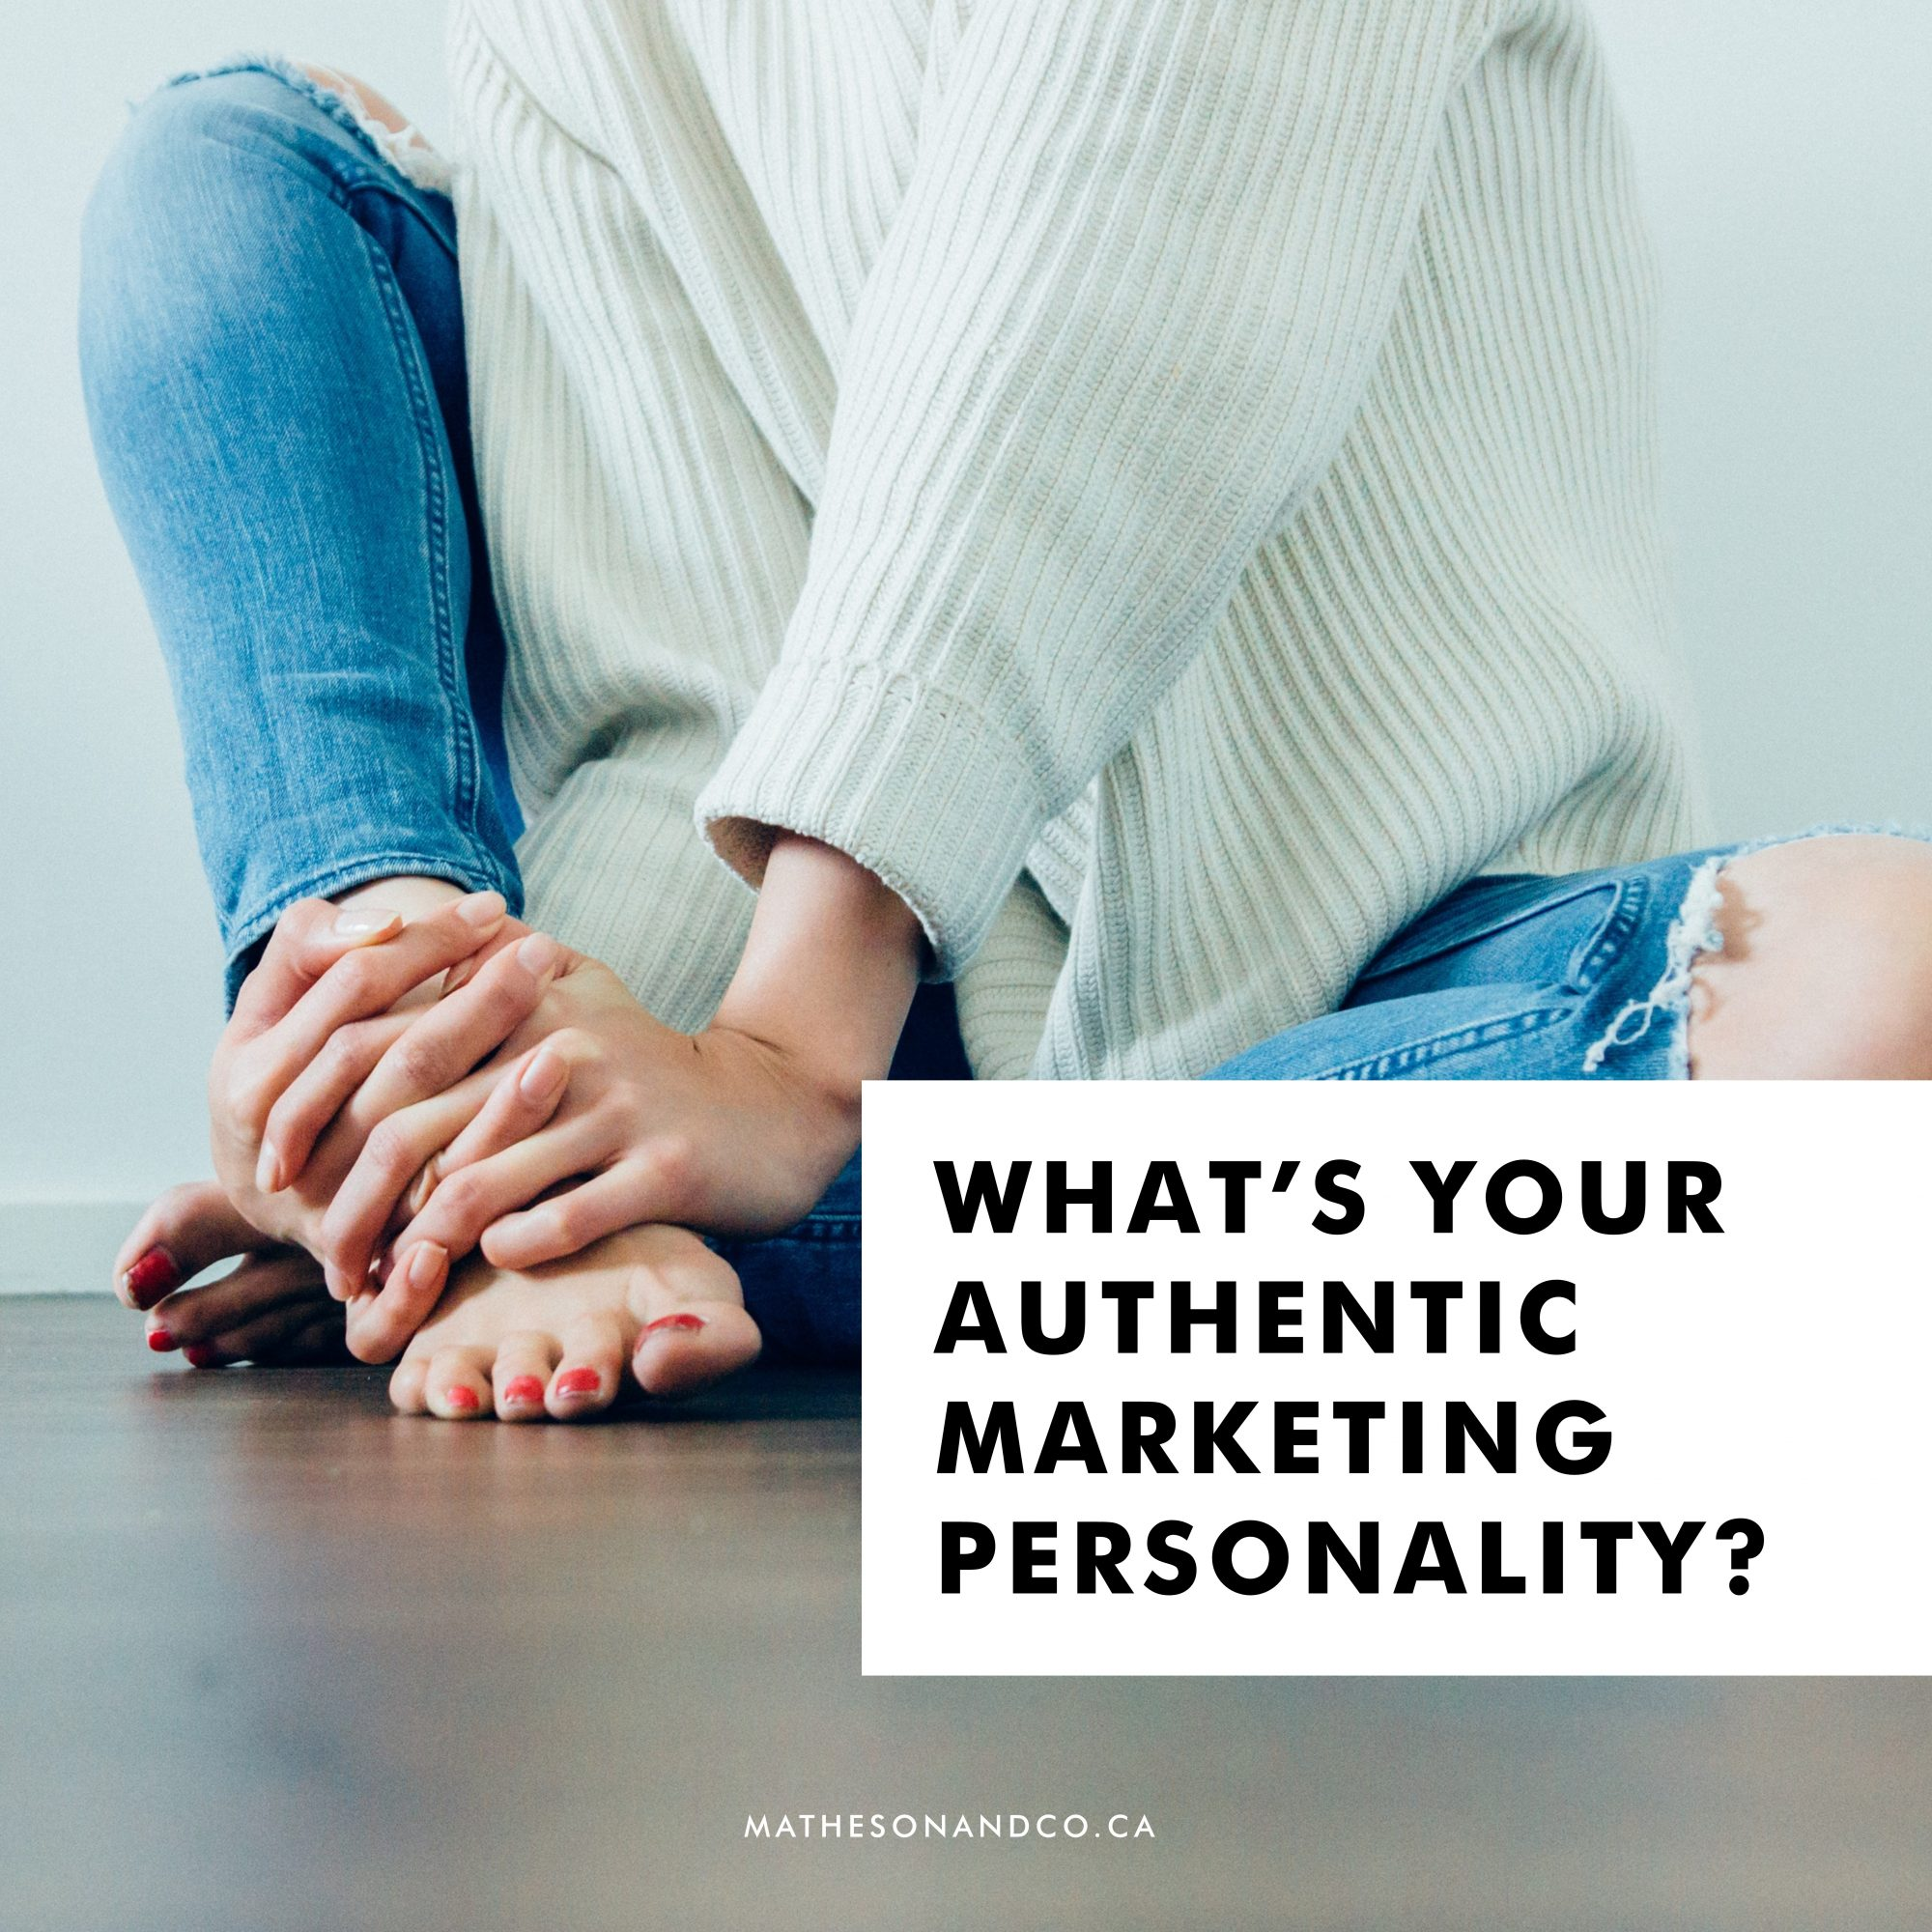 What's your authentic marketing personality?